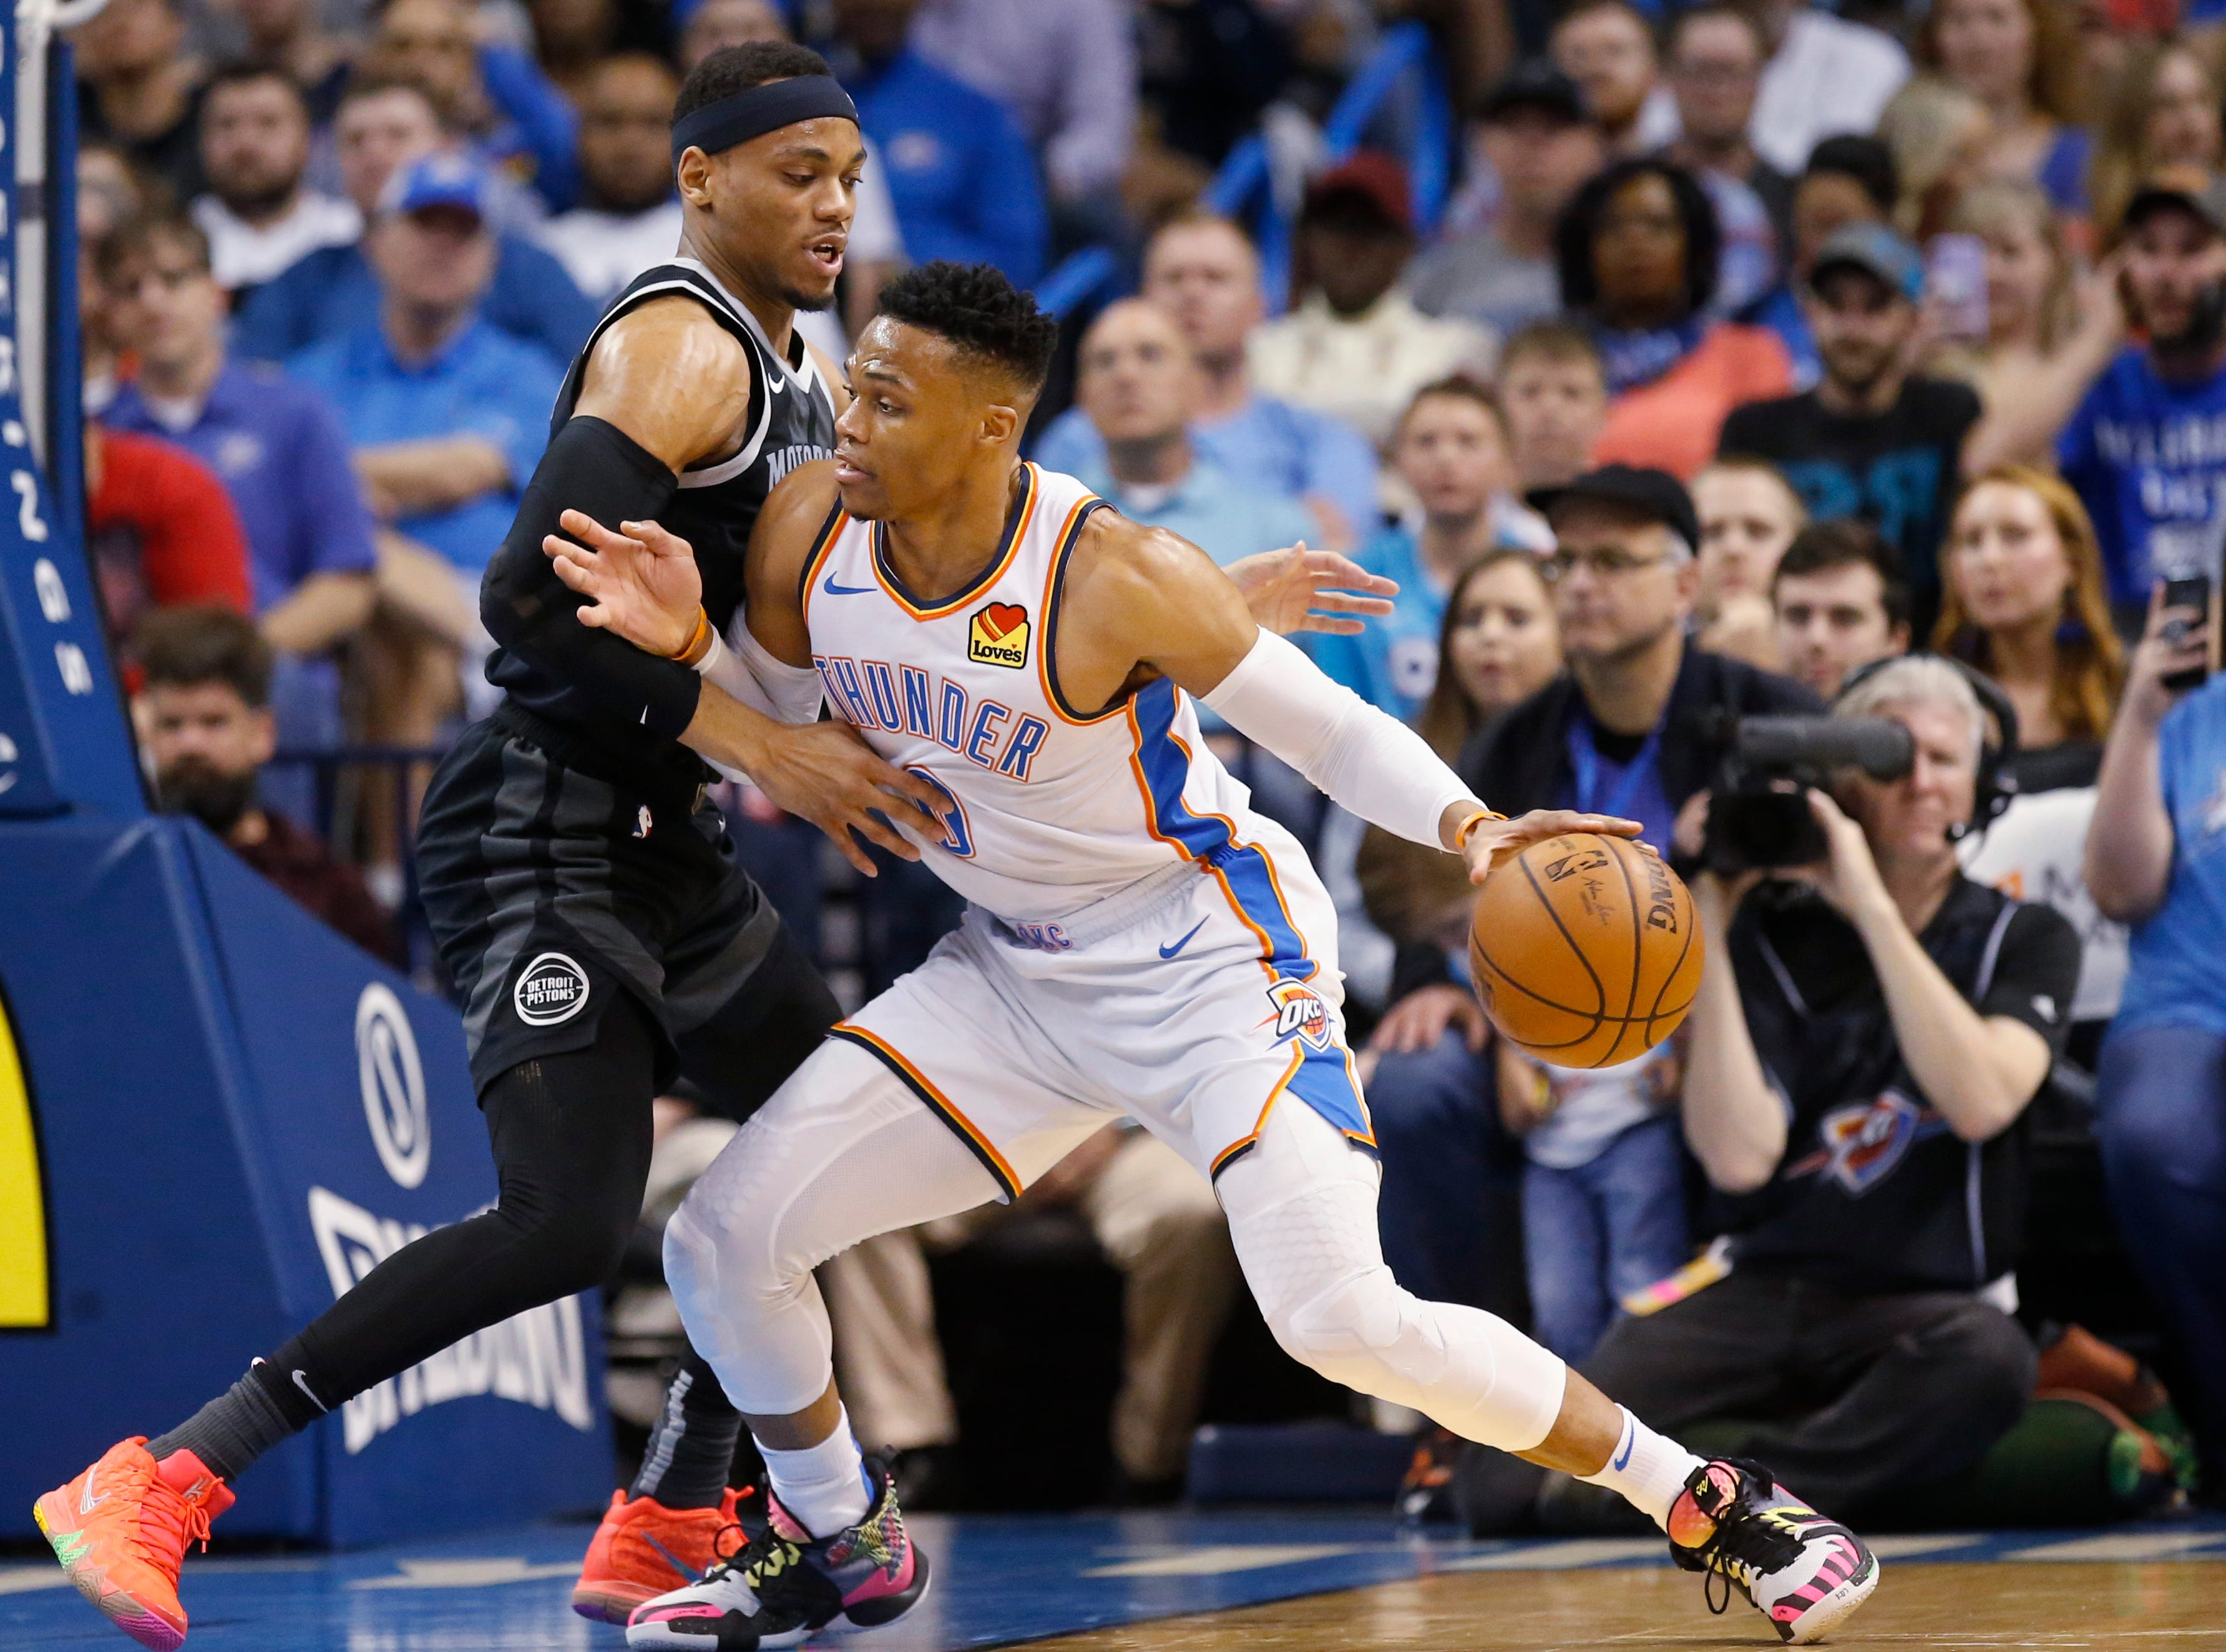 Oklahoma City Thunder guard Russell Westbrook, right, drives against Detroit Pistons guard Bruce Brown during the first half.